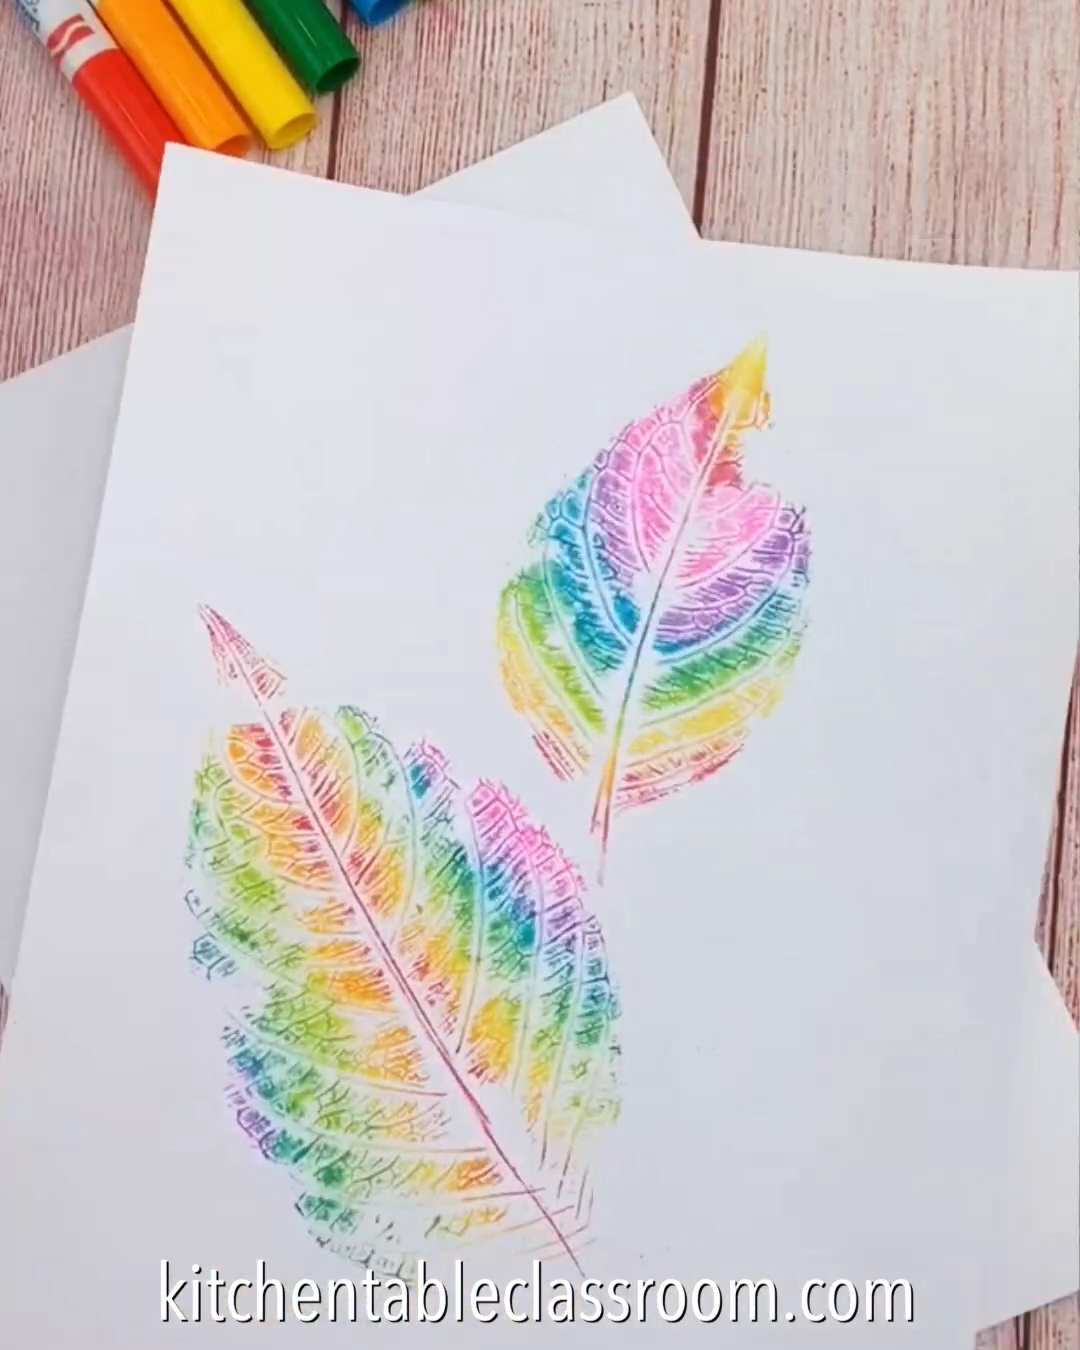 COLORFUL LEAF ART IDEA